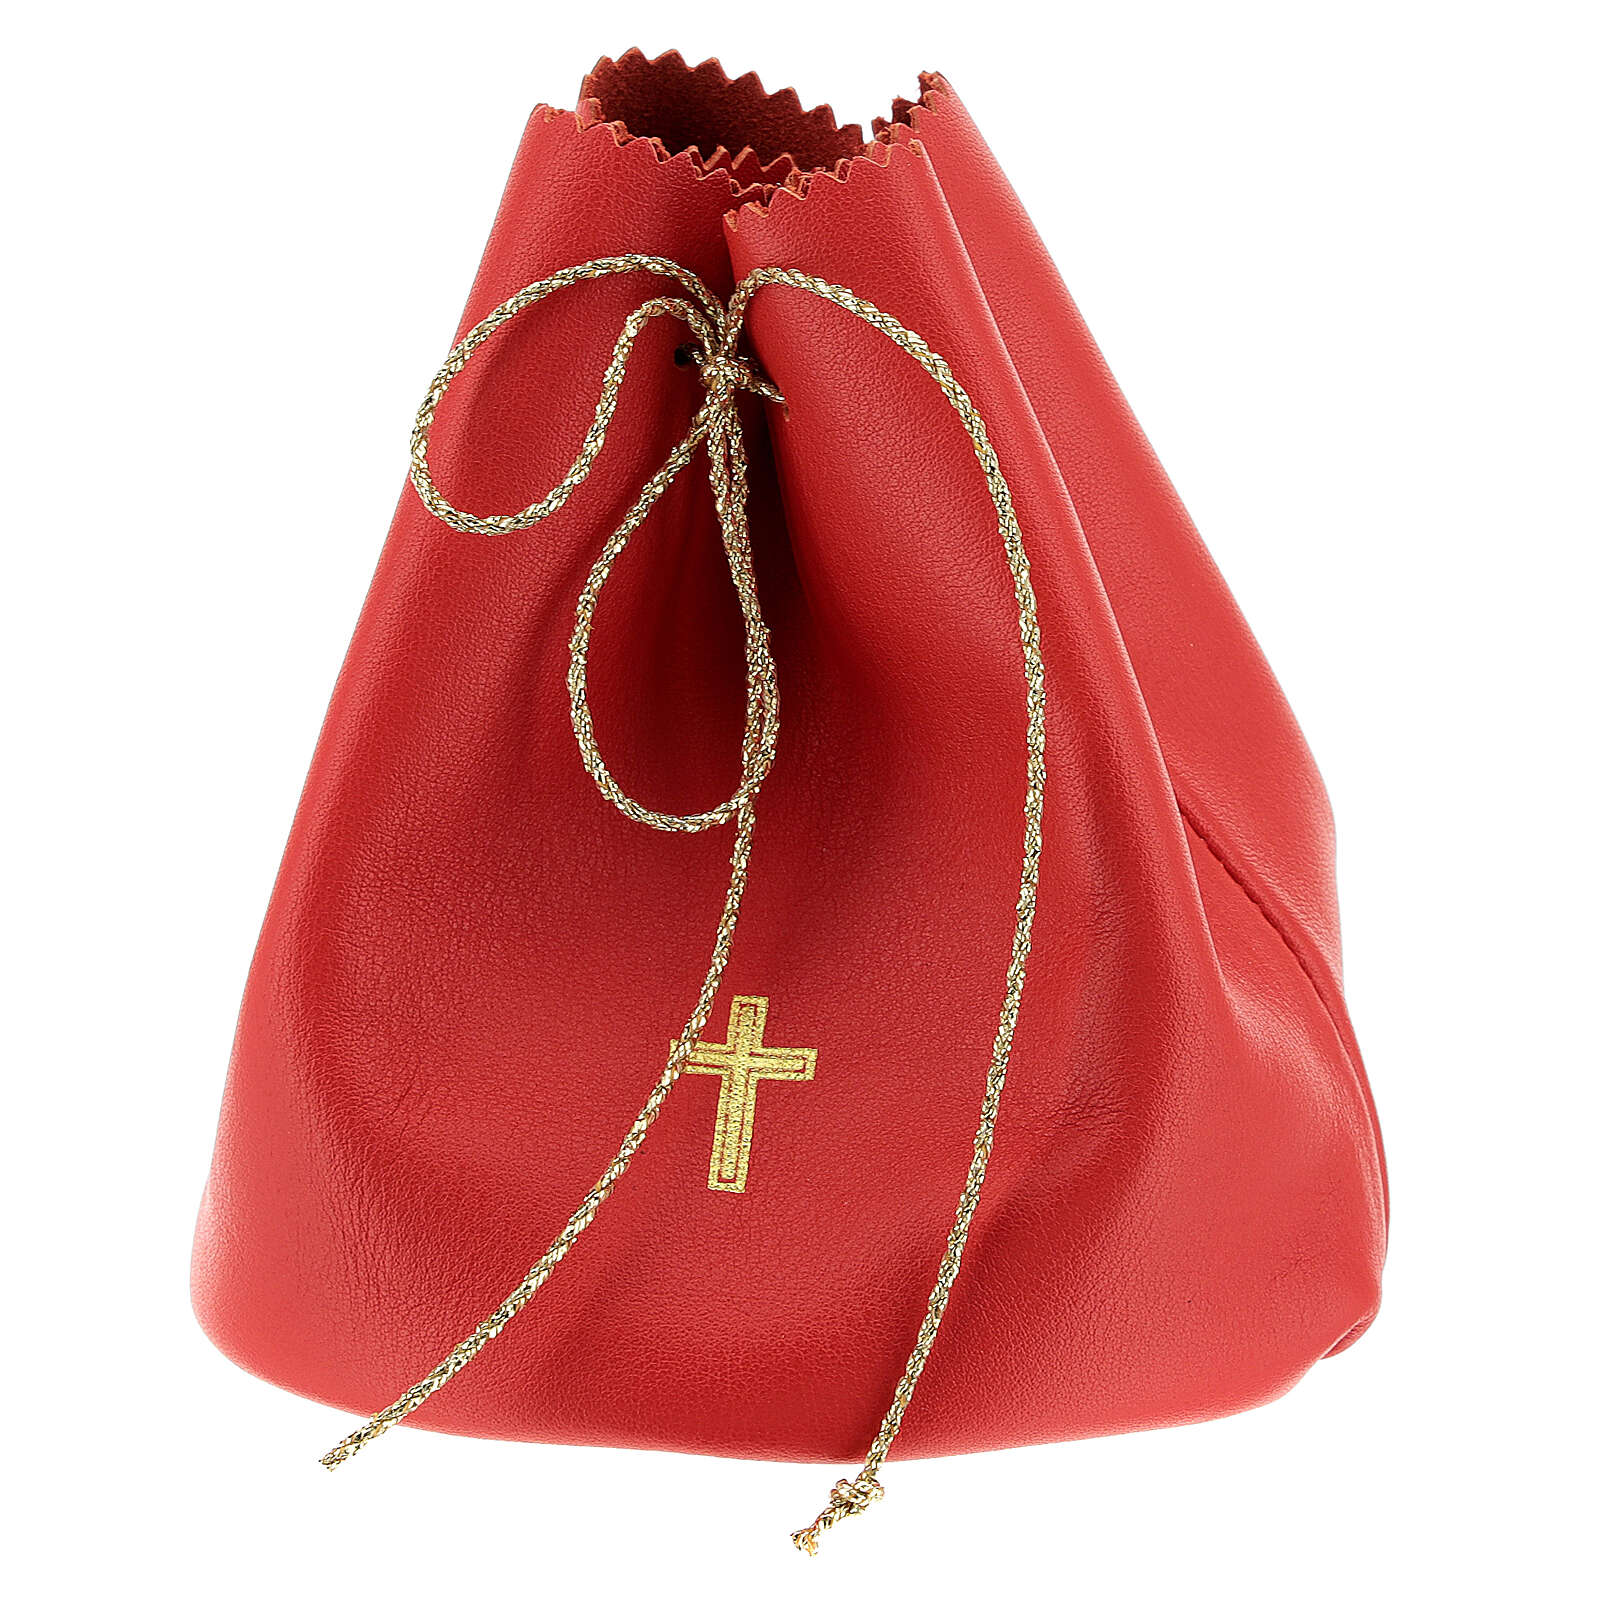 Red leather bag for 3 Holy oils stocks 3